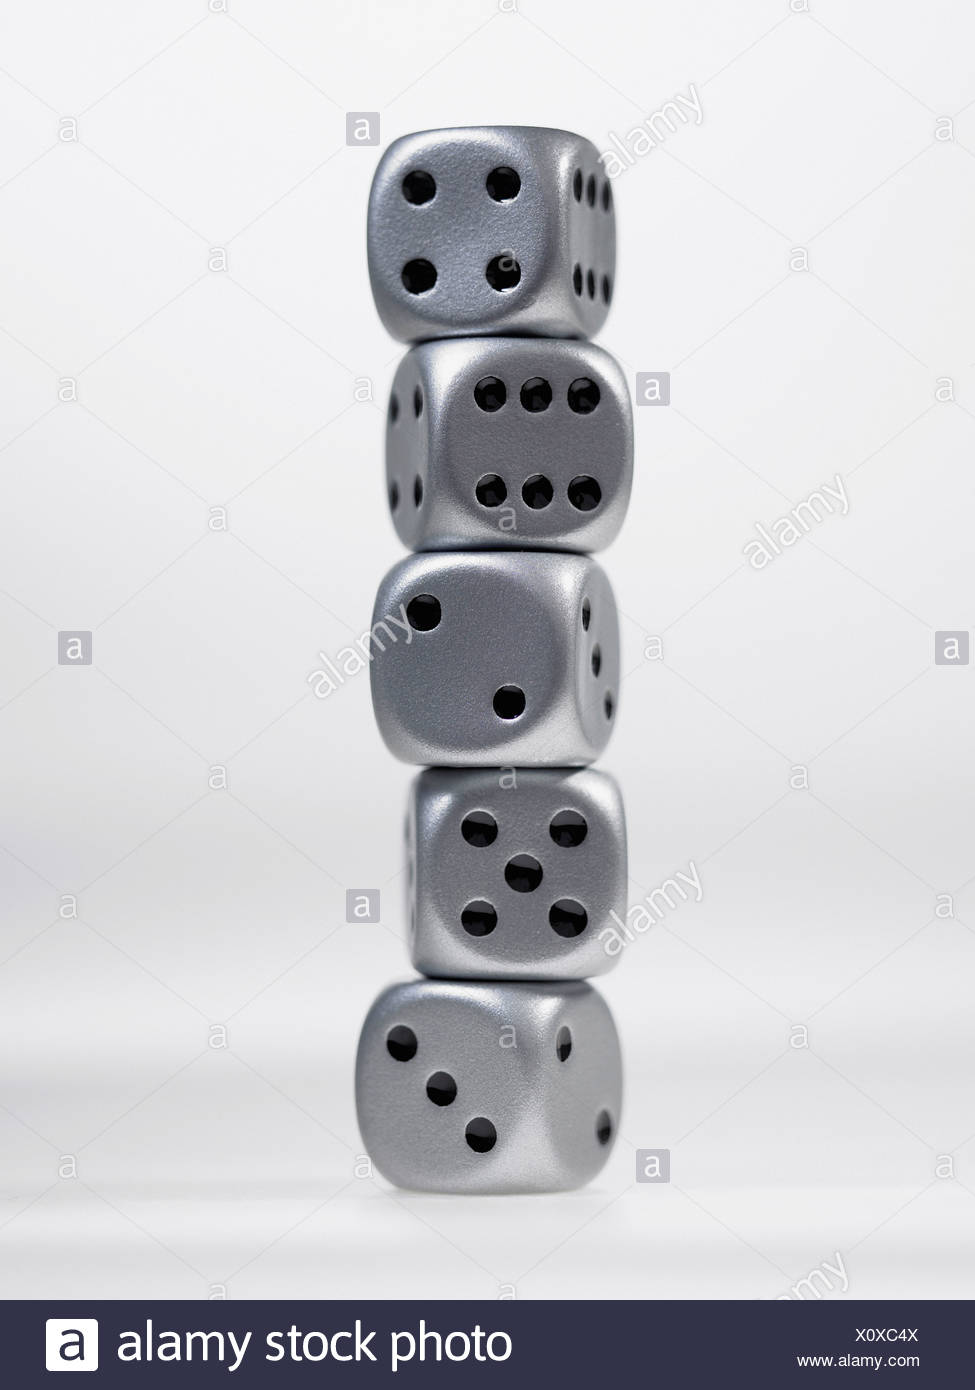 Close up of stack of silver dice - Stock Image